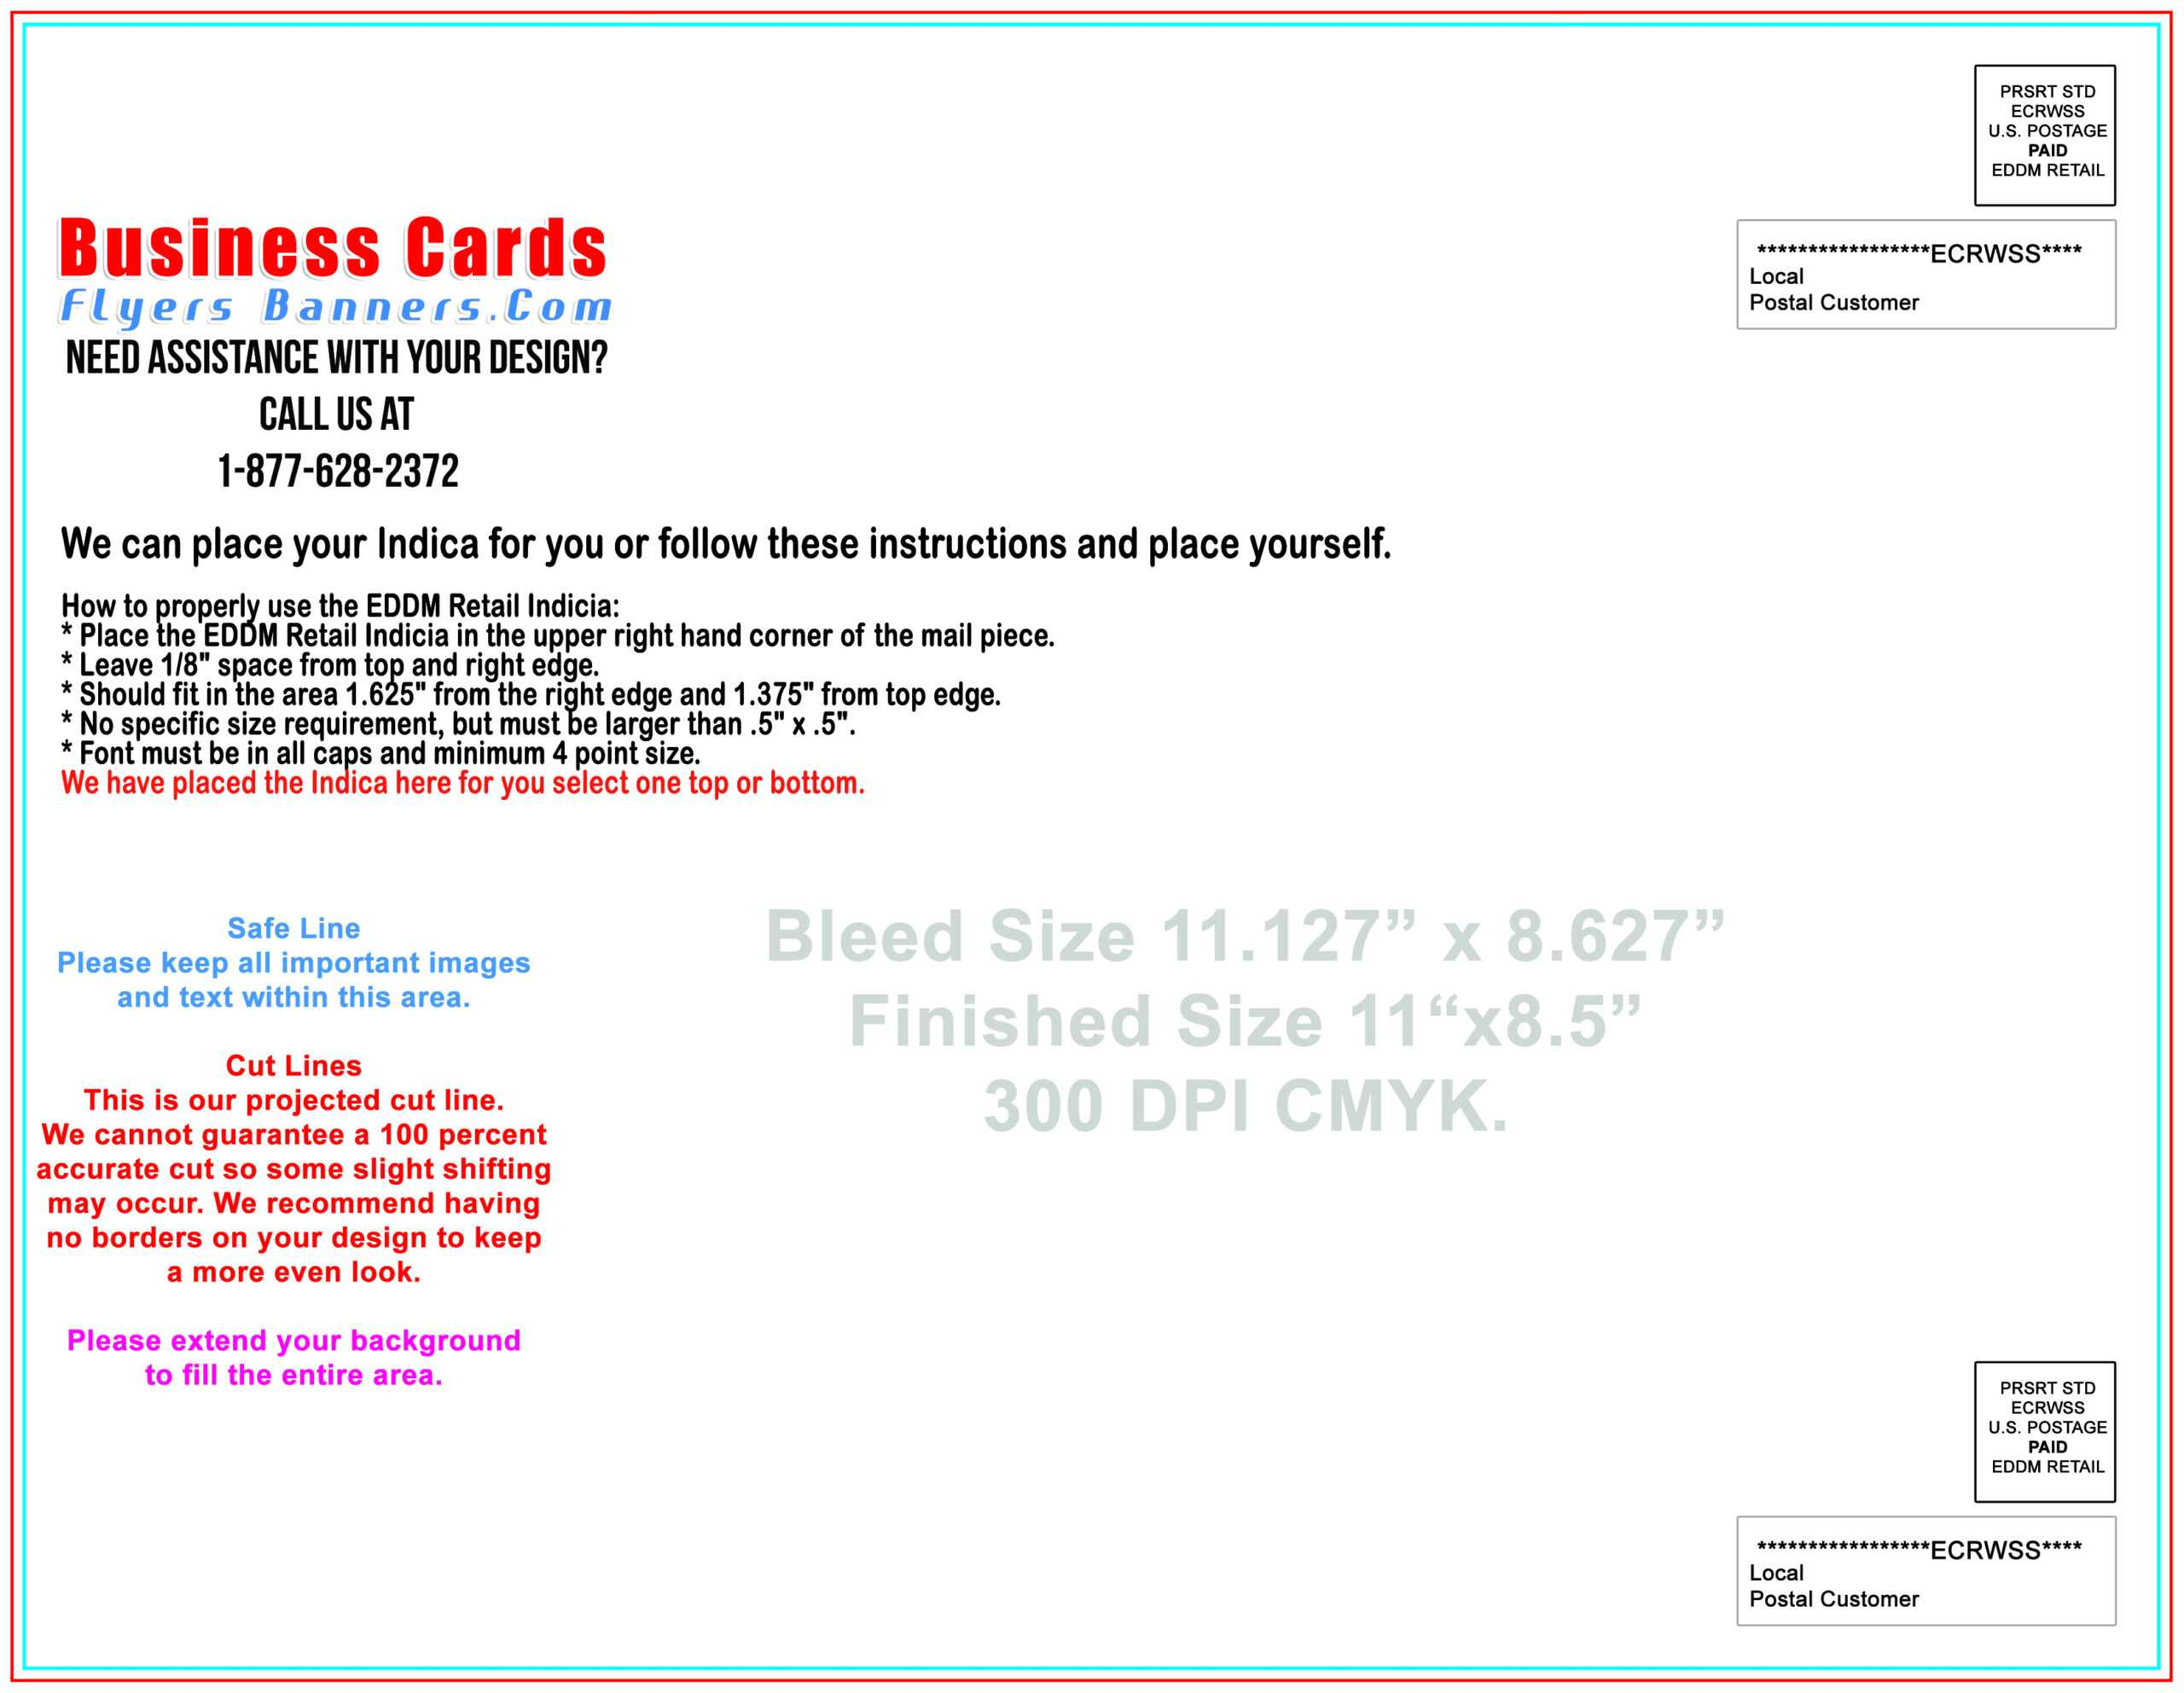 Eddm Postcard Templates - Free Shipping And Low Prices Pertaining To Eddm Postcard Template